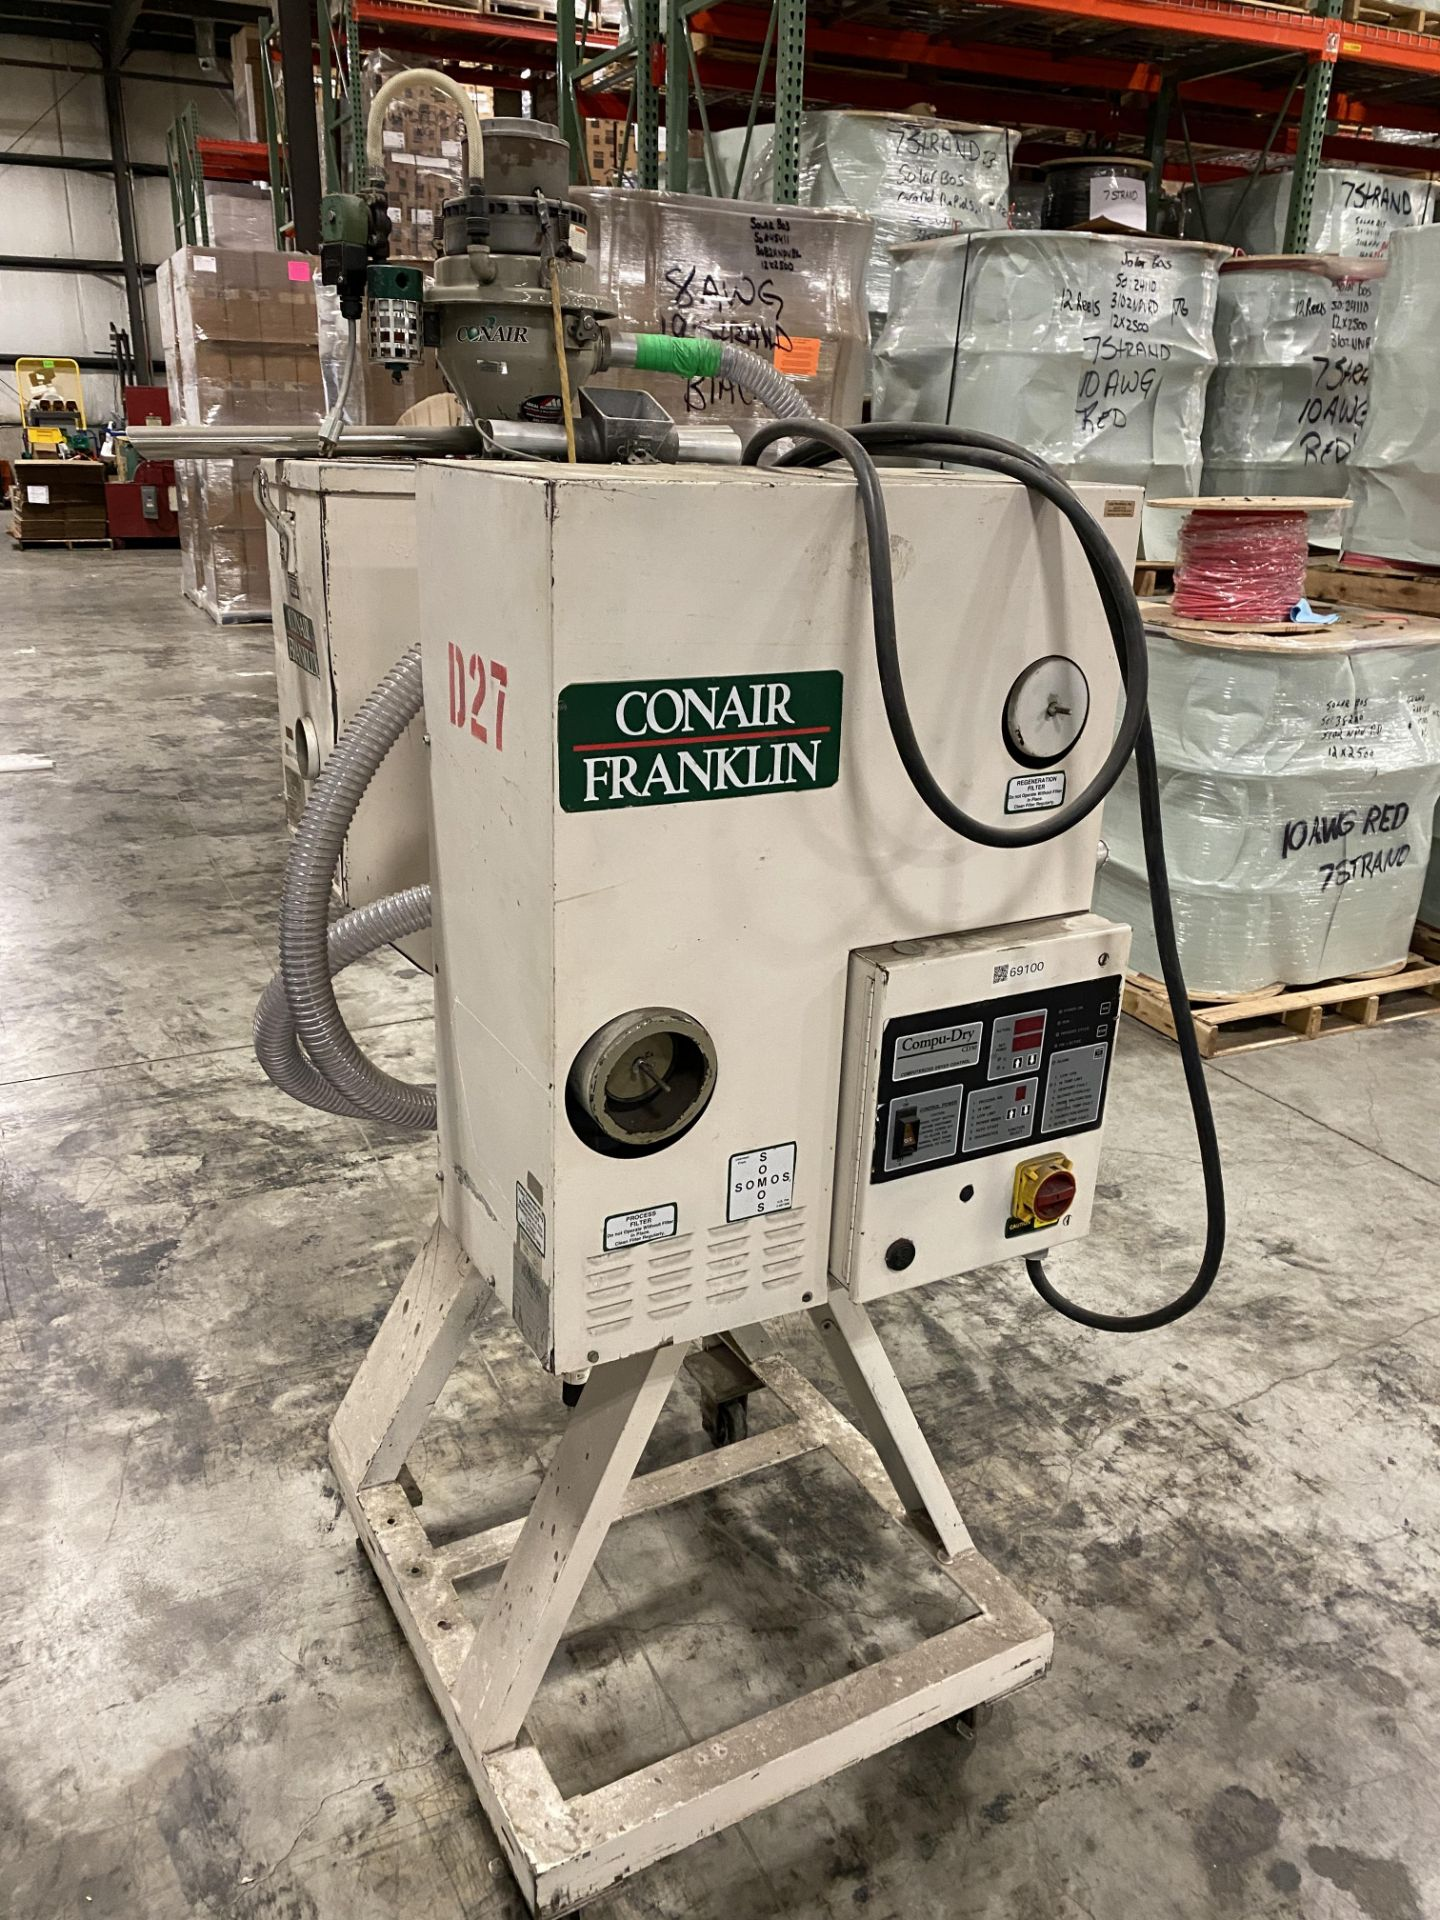 Conair Franklin DHB3A4S030050 Machine Mount Dryer - Image 2 of 8